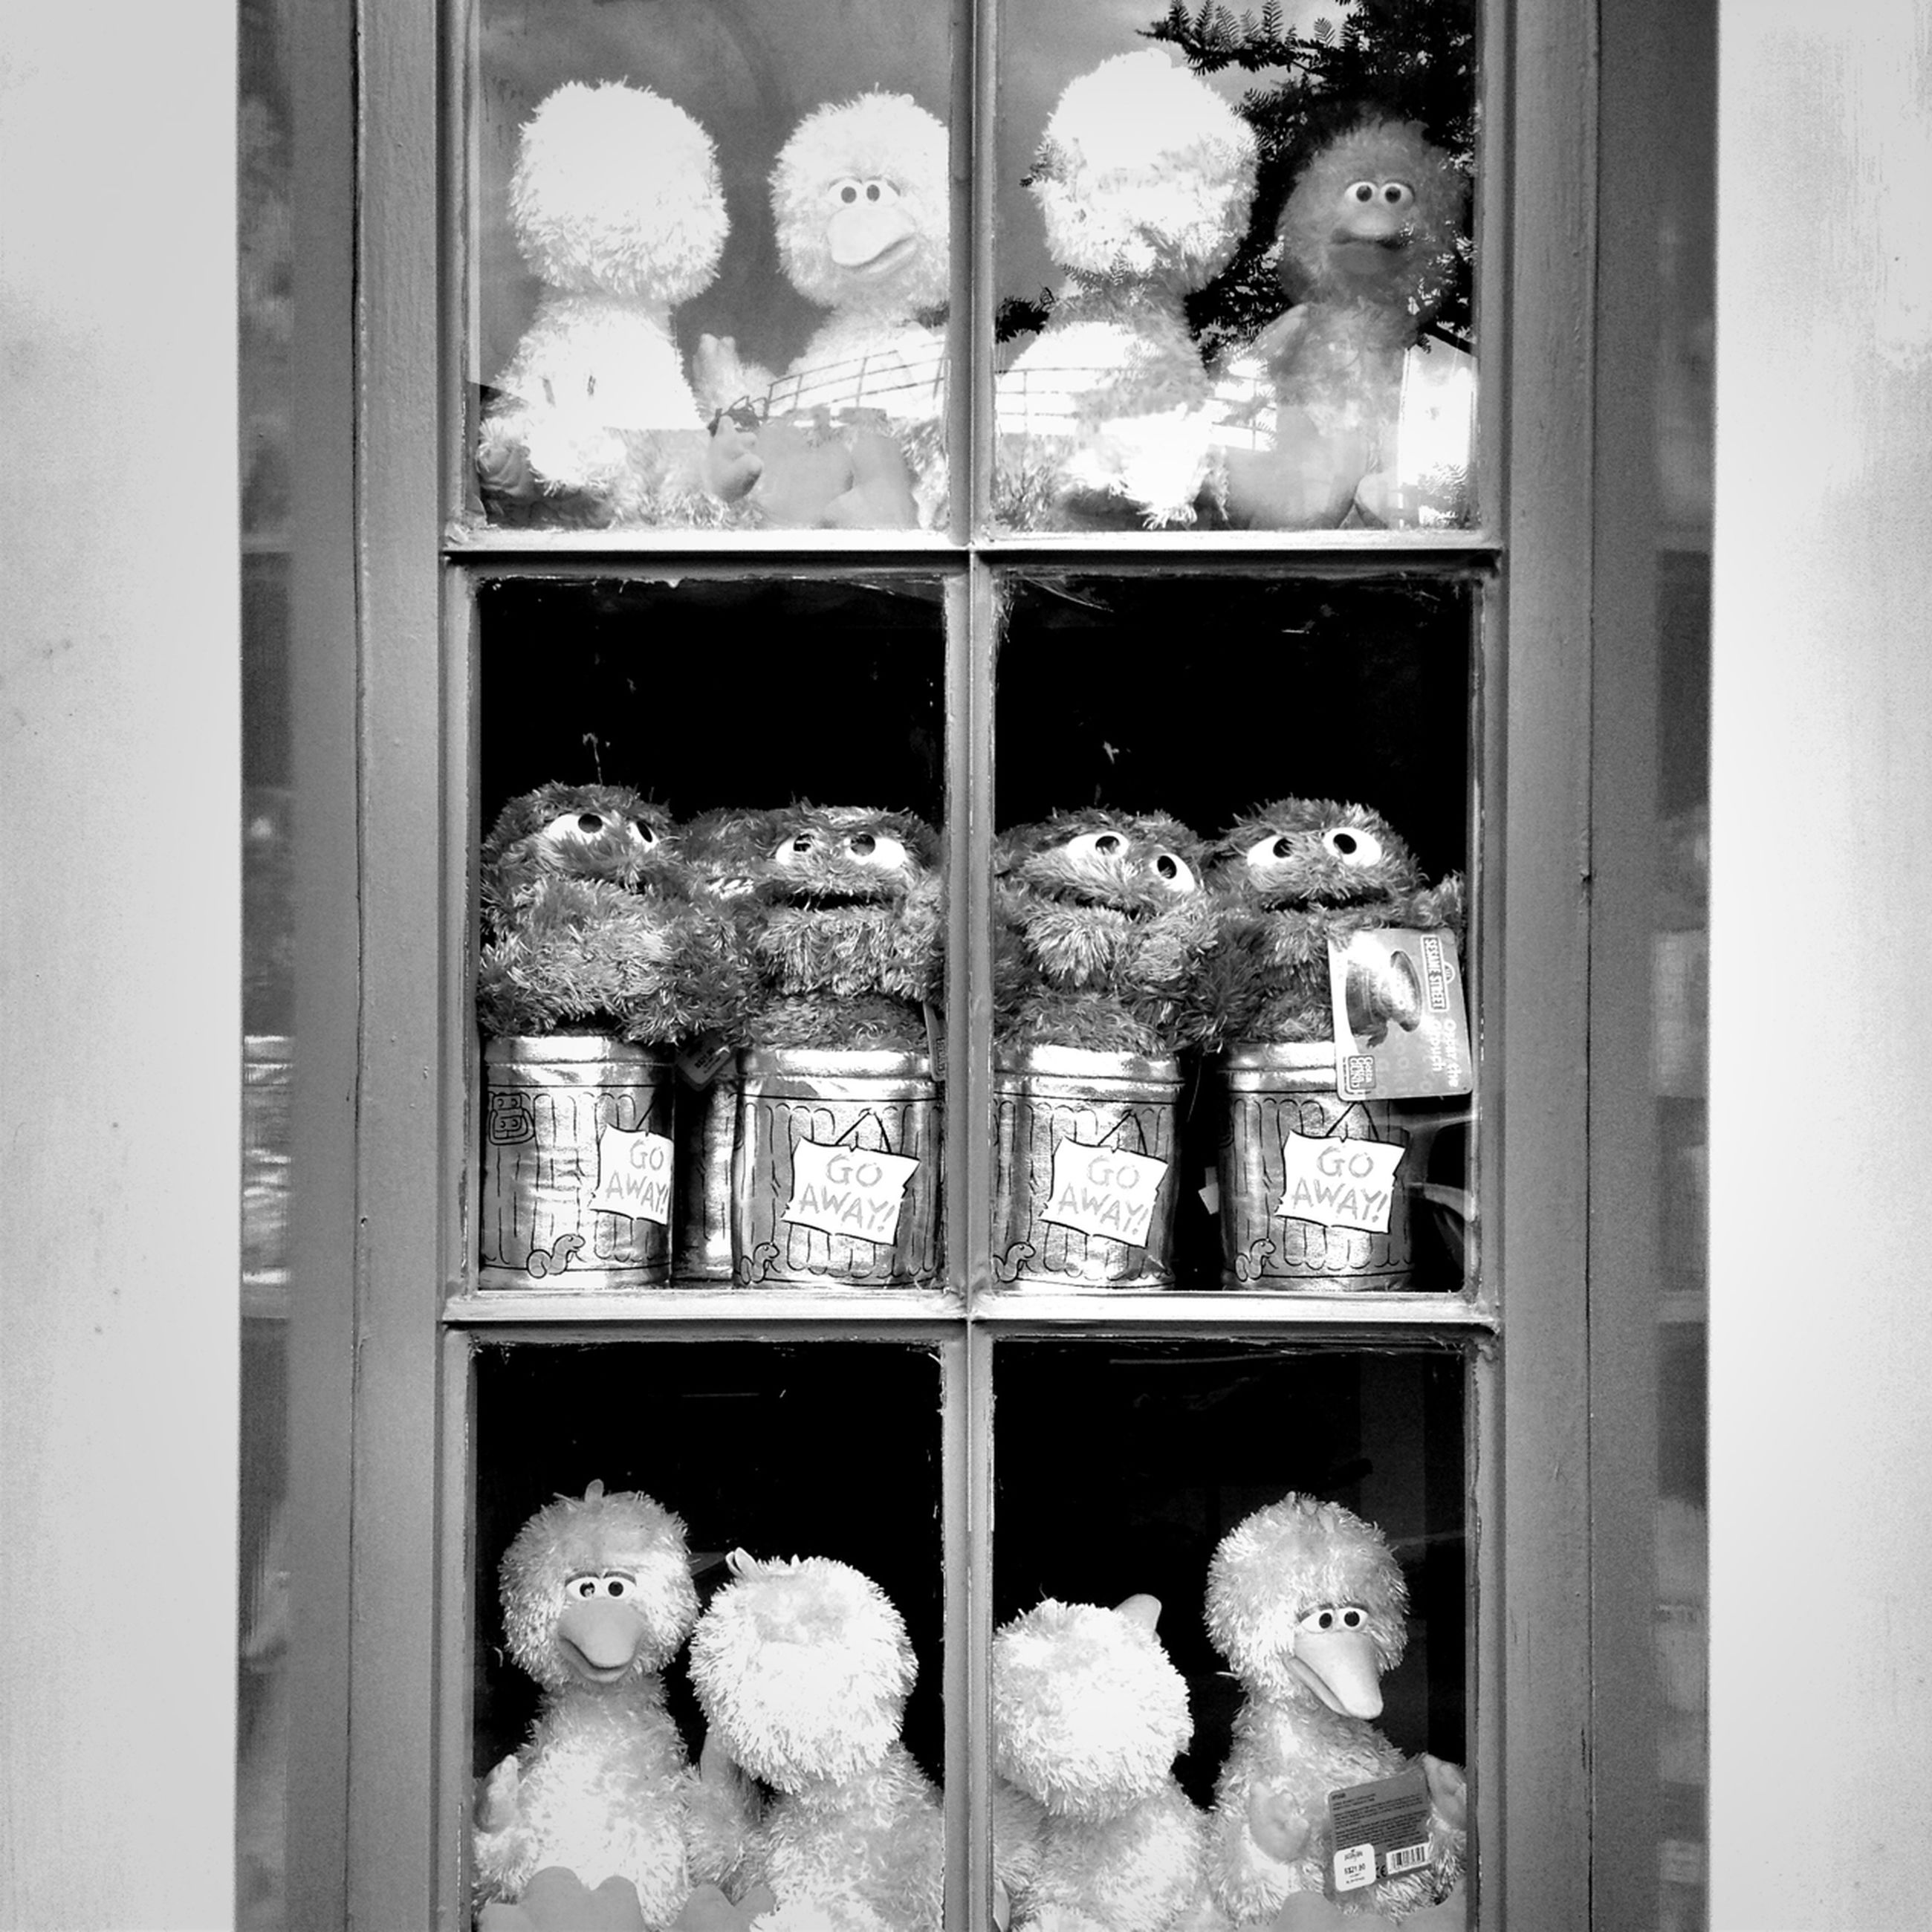 indoors, glass - material, transparent, window, variation, reflection, glass, still life, cold temperature, no people, abundance, close-up, home interior, store, choice, freshness, day, shelf, large group of objects, retail display